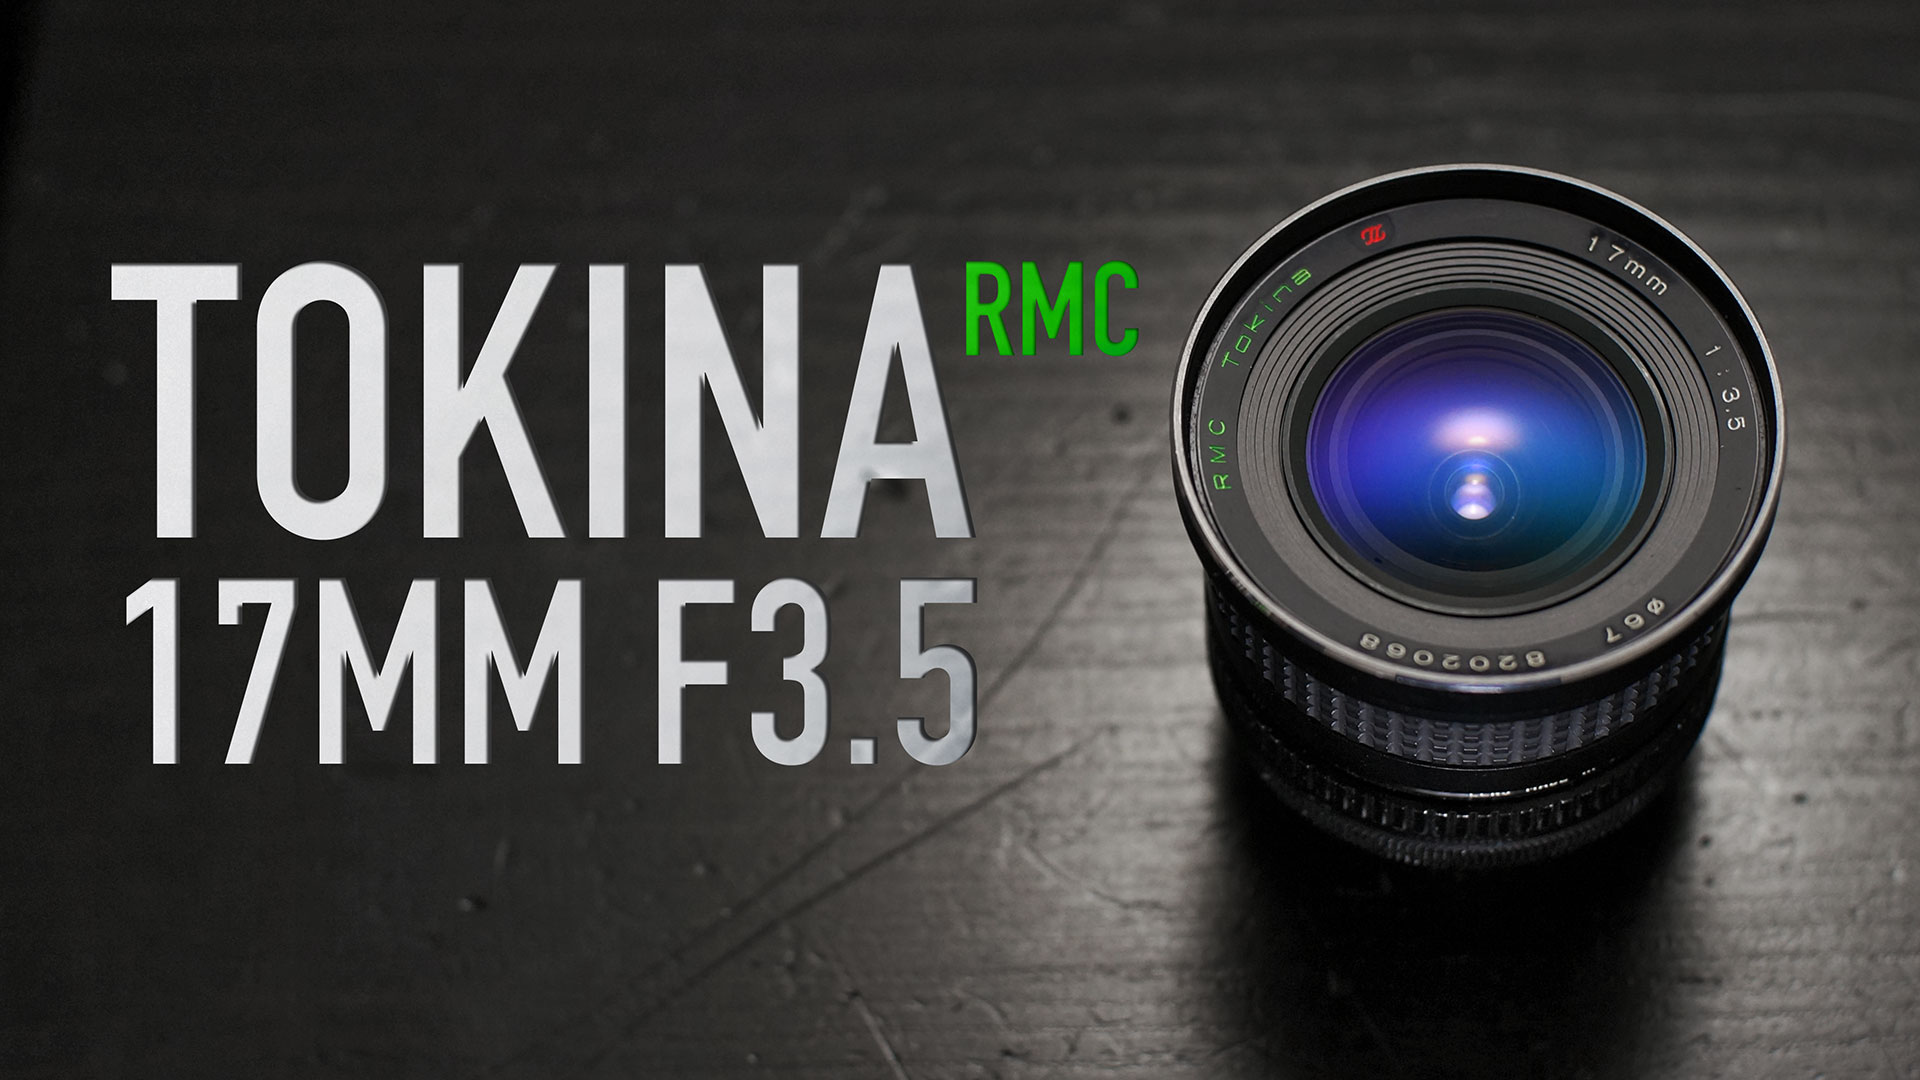 Tokina RMC 17mm F/3.5 Review + Test Footage